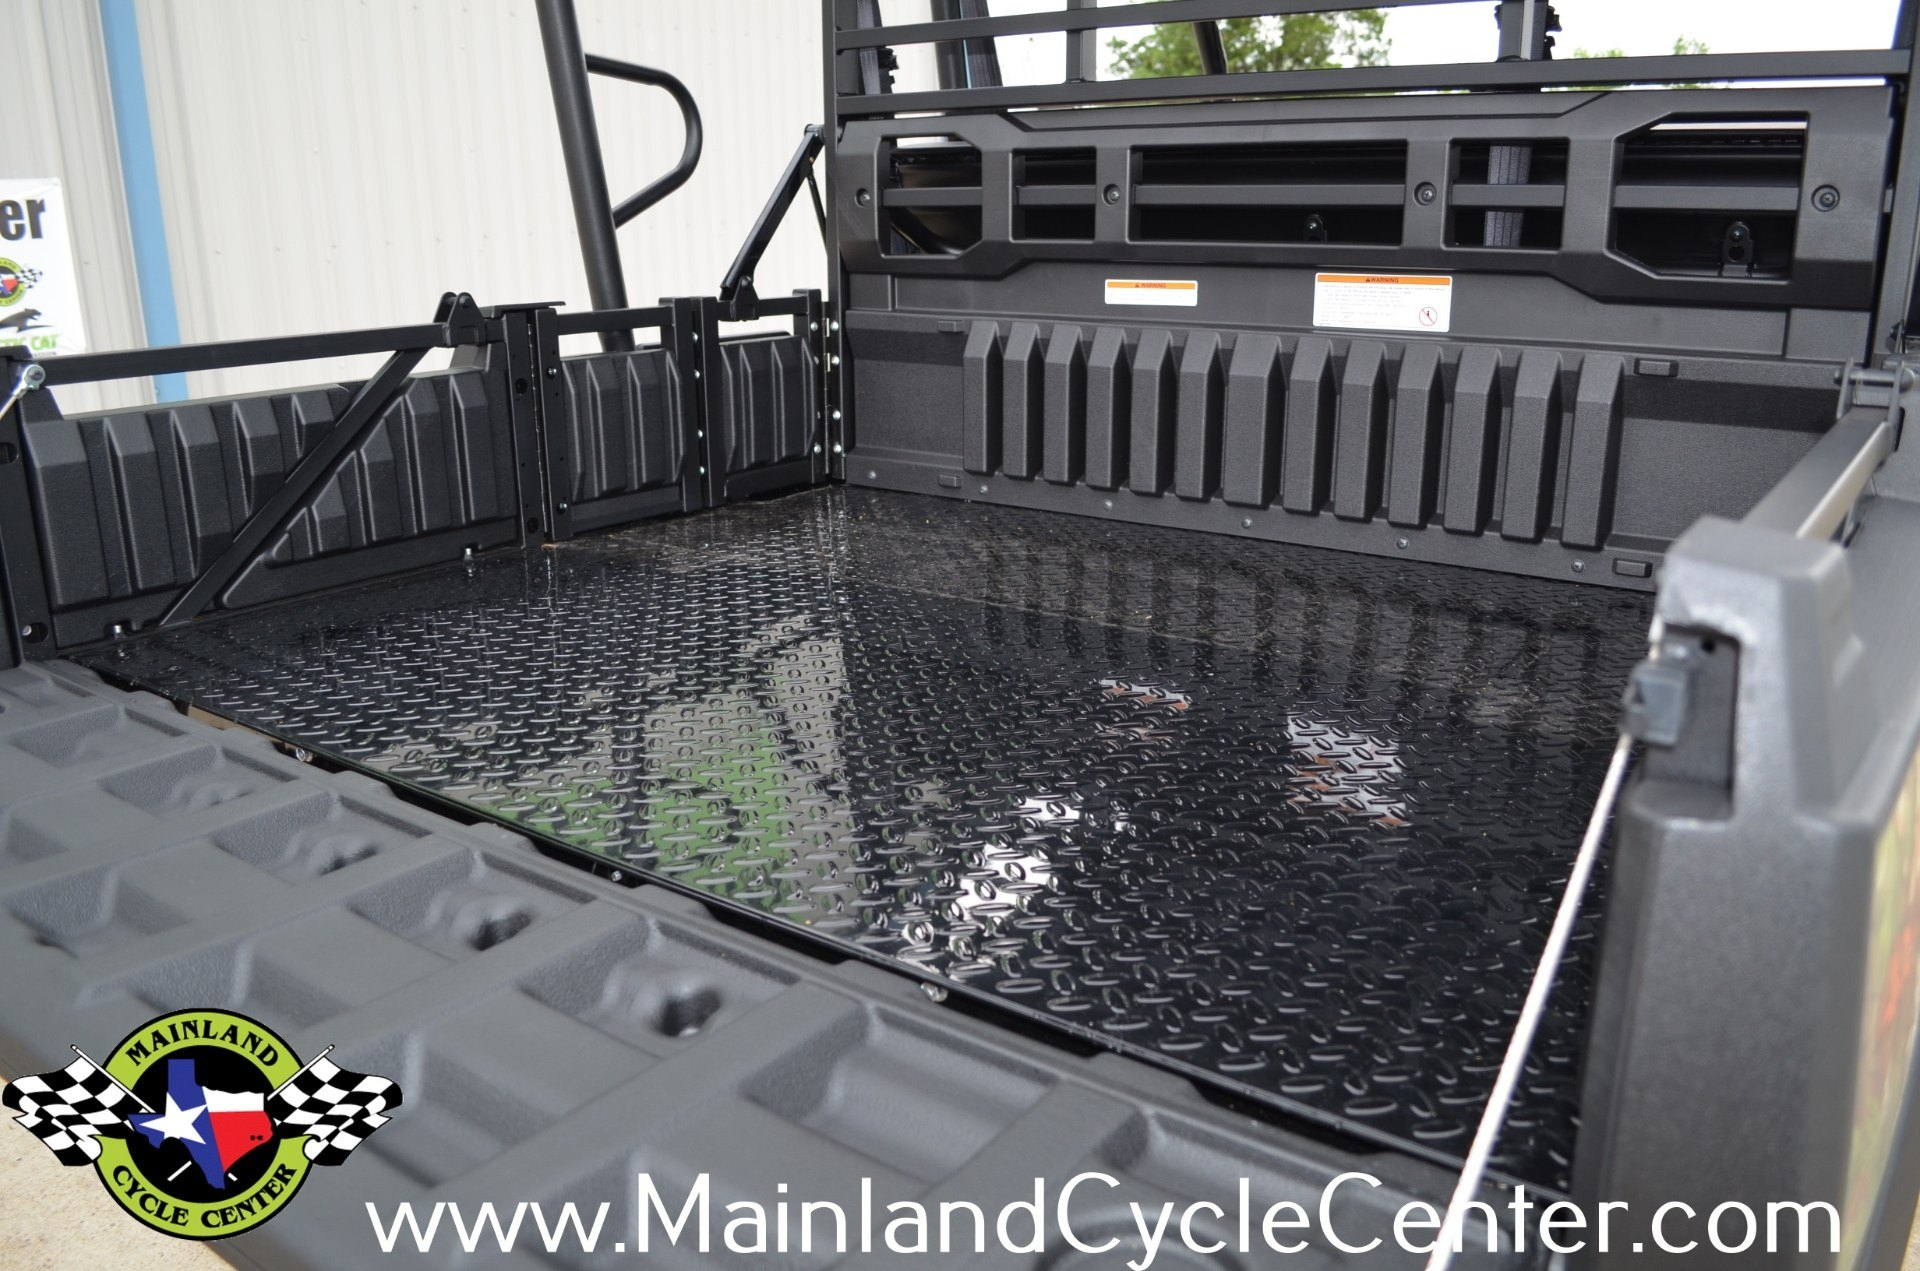 2016 Kawasaki Mule Pro-FXT EPS Camo in La Marque, Texas - Photo 34